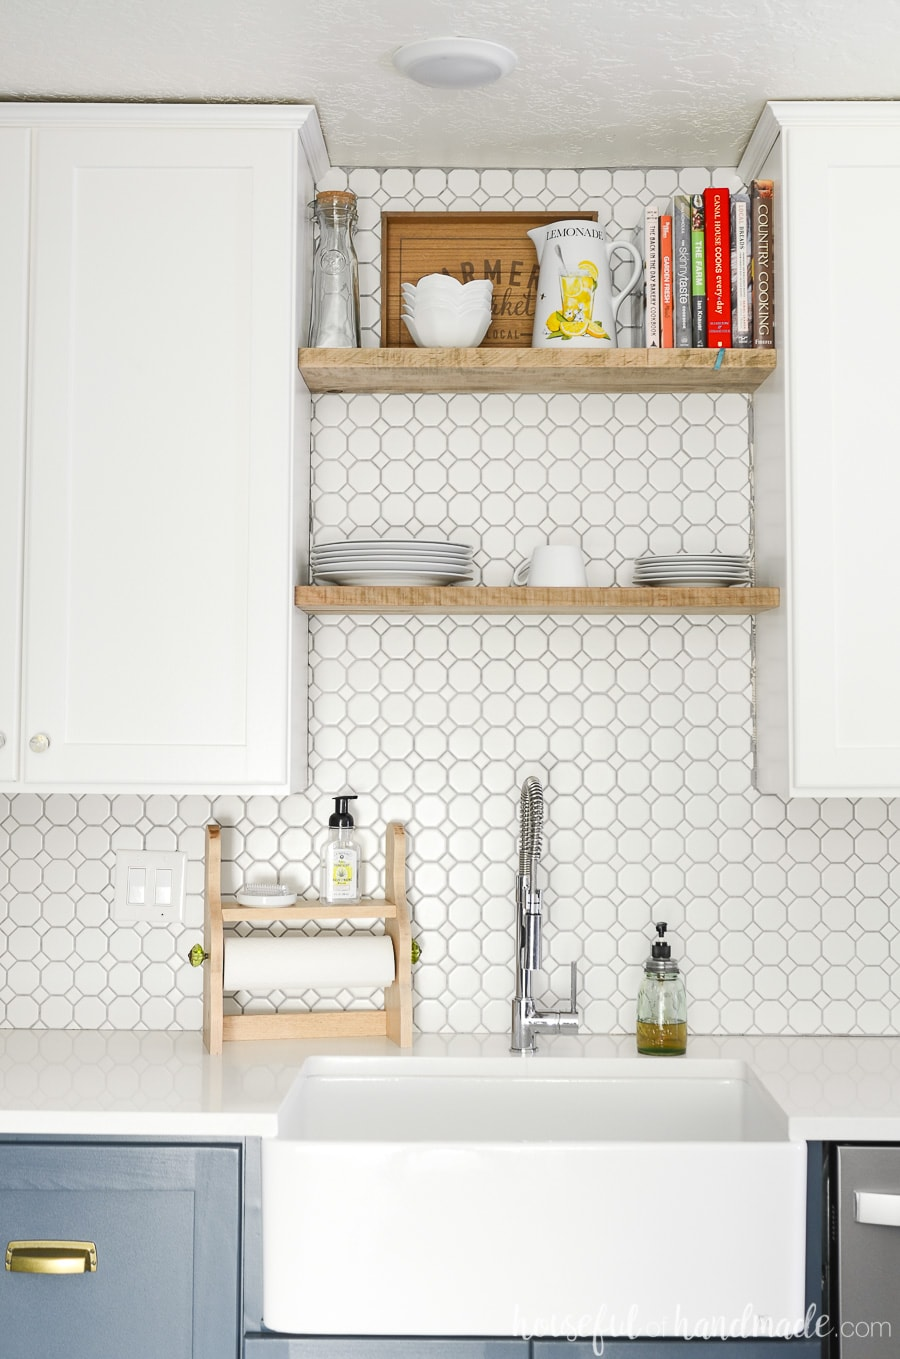 before buying a farmhouse sink